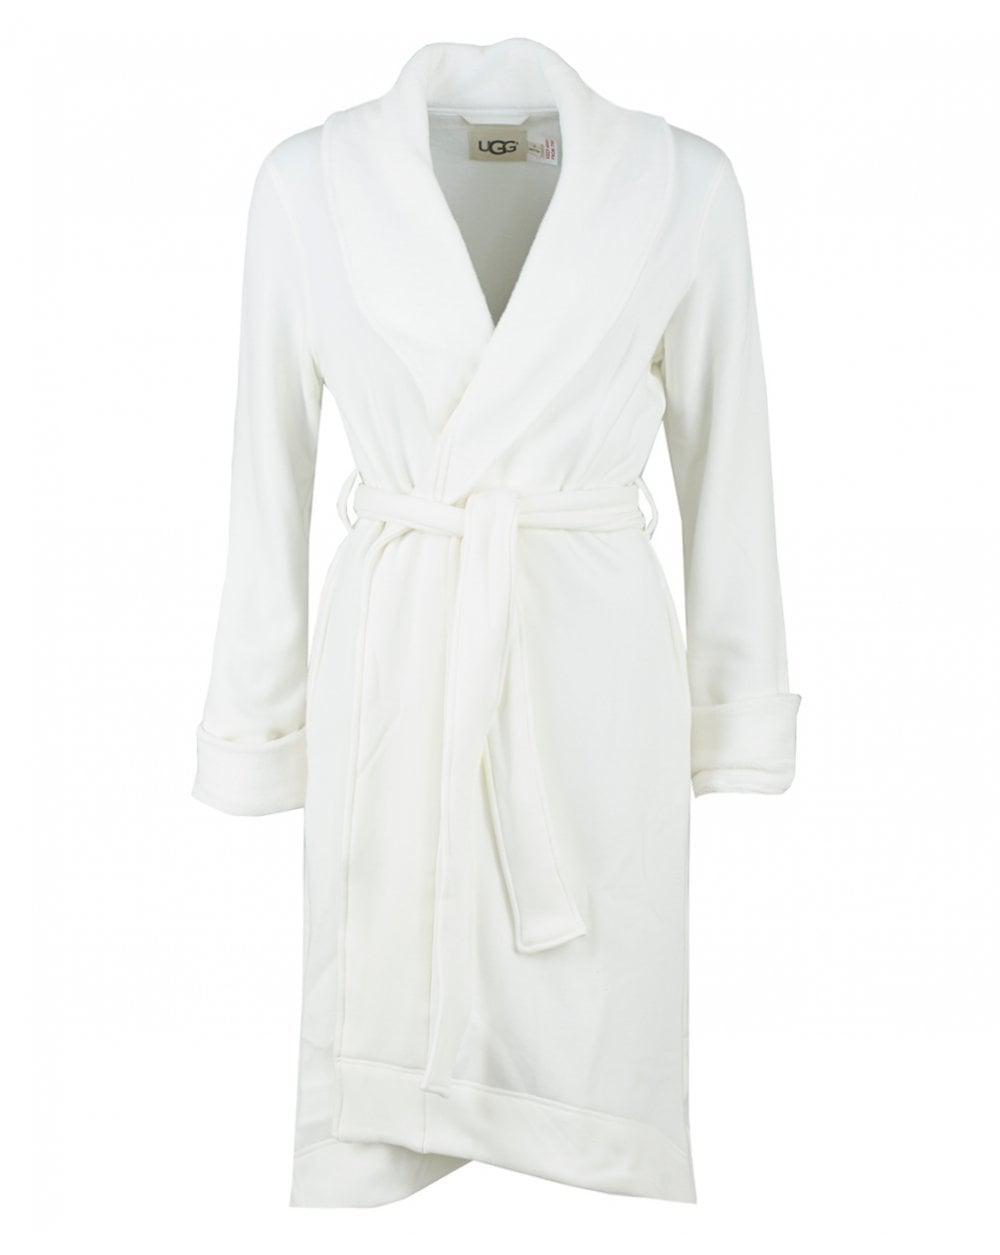 2c33d10a51 UGG. Women s Duffield Ii Fleece Lined Dressing Gown. £120 From Psyche